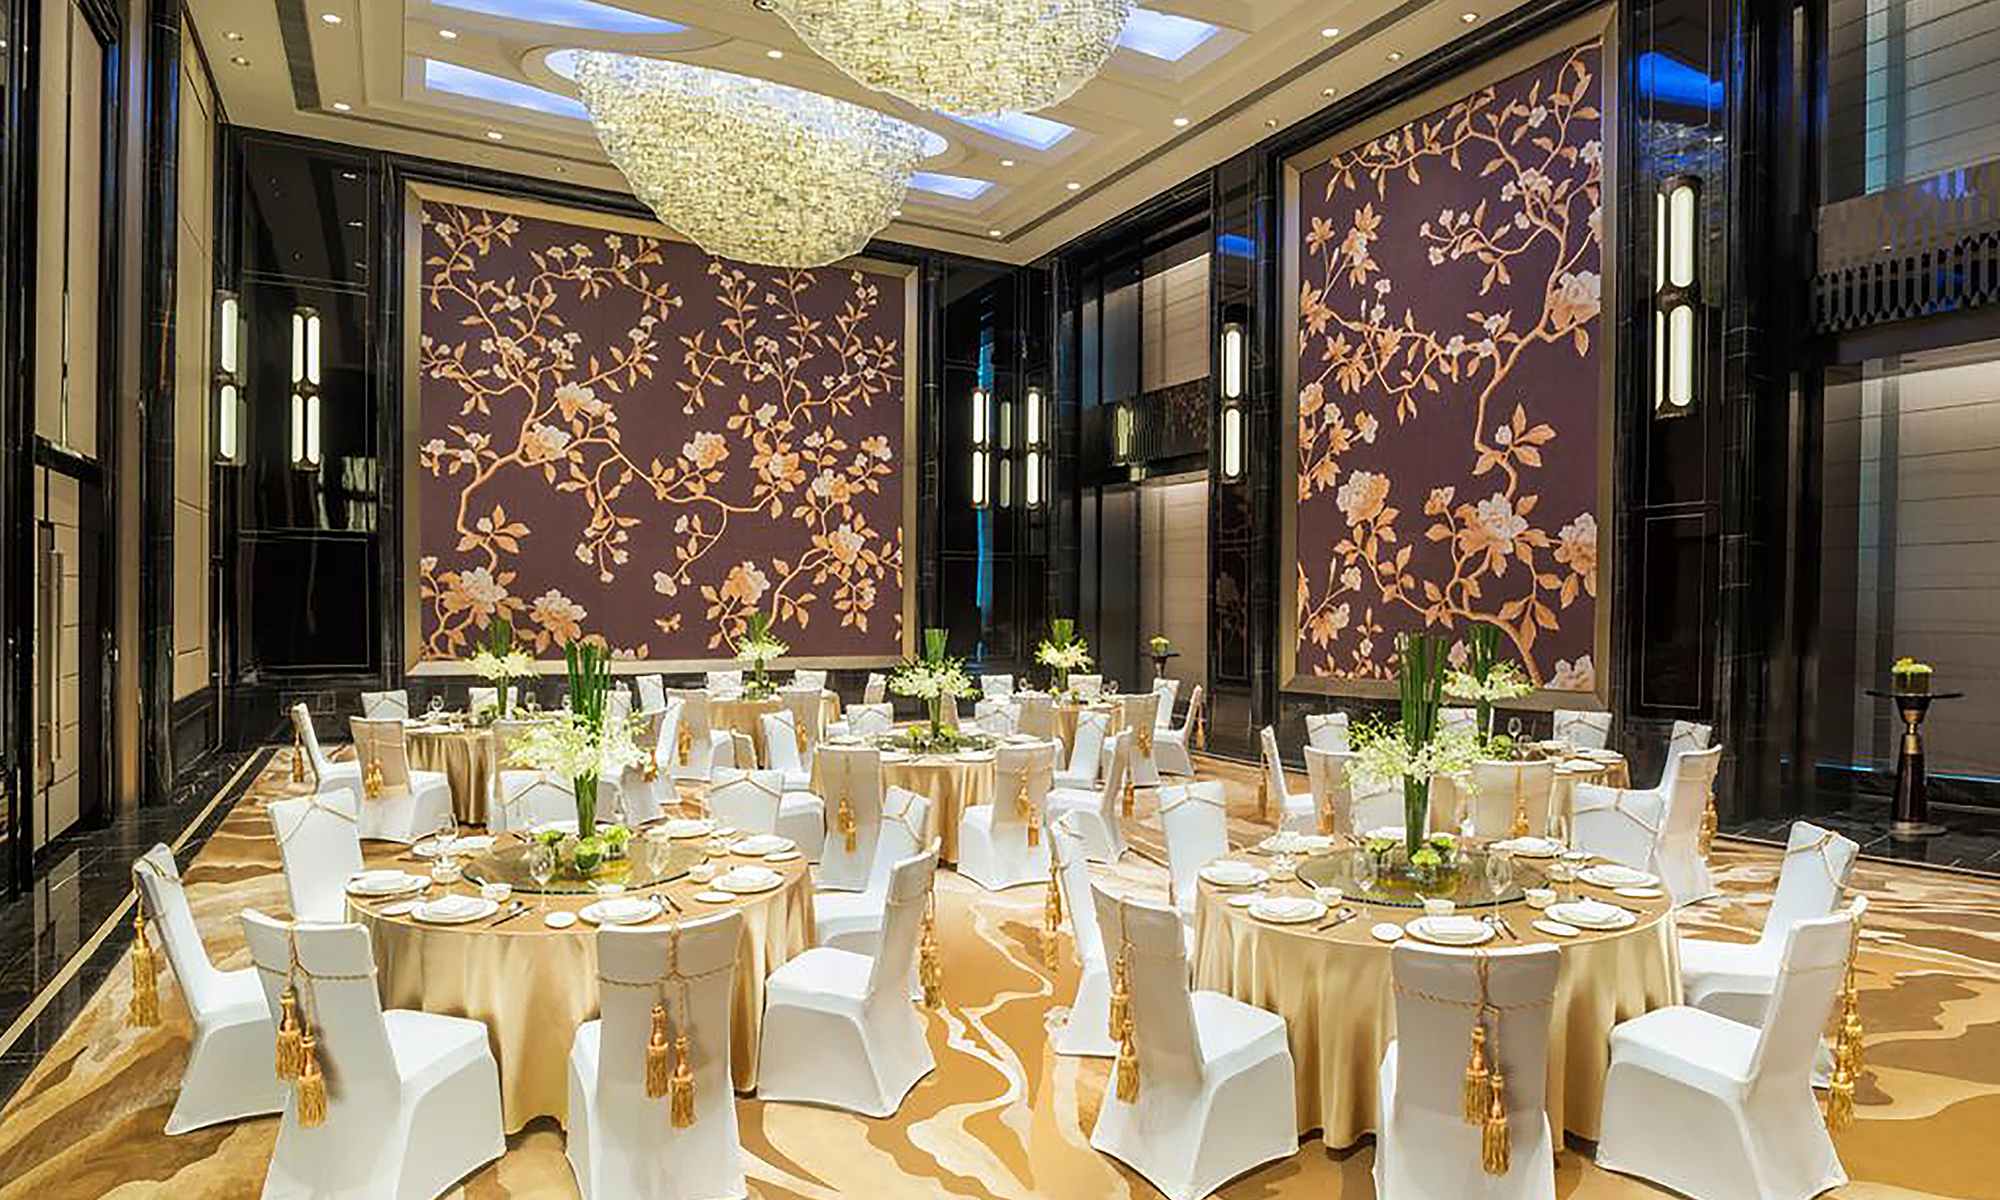 Wall coverings, ballroom